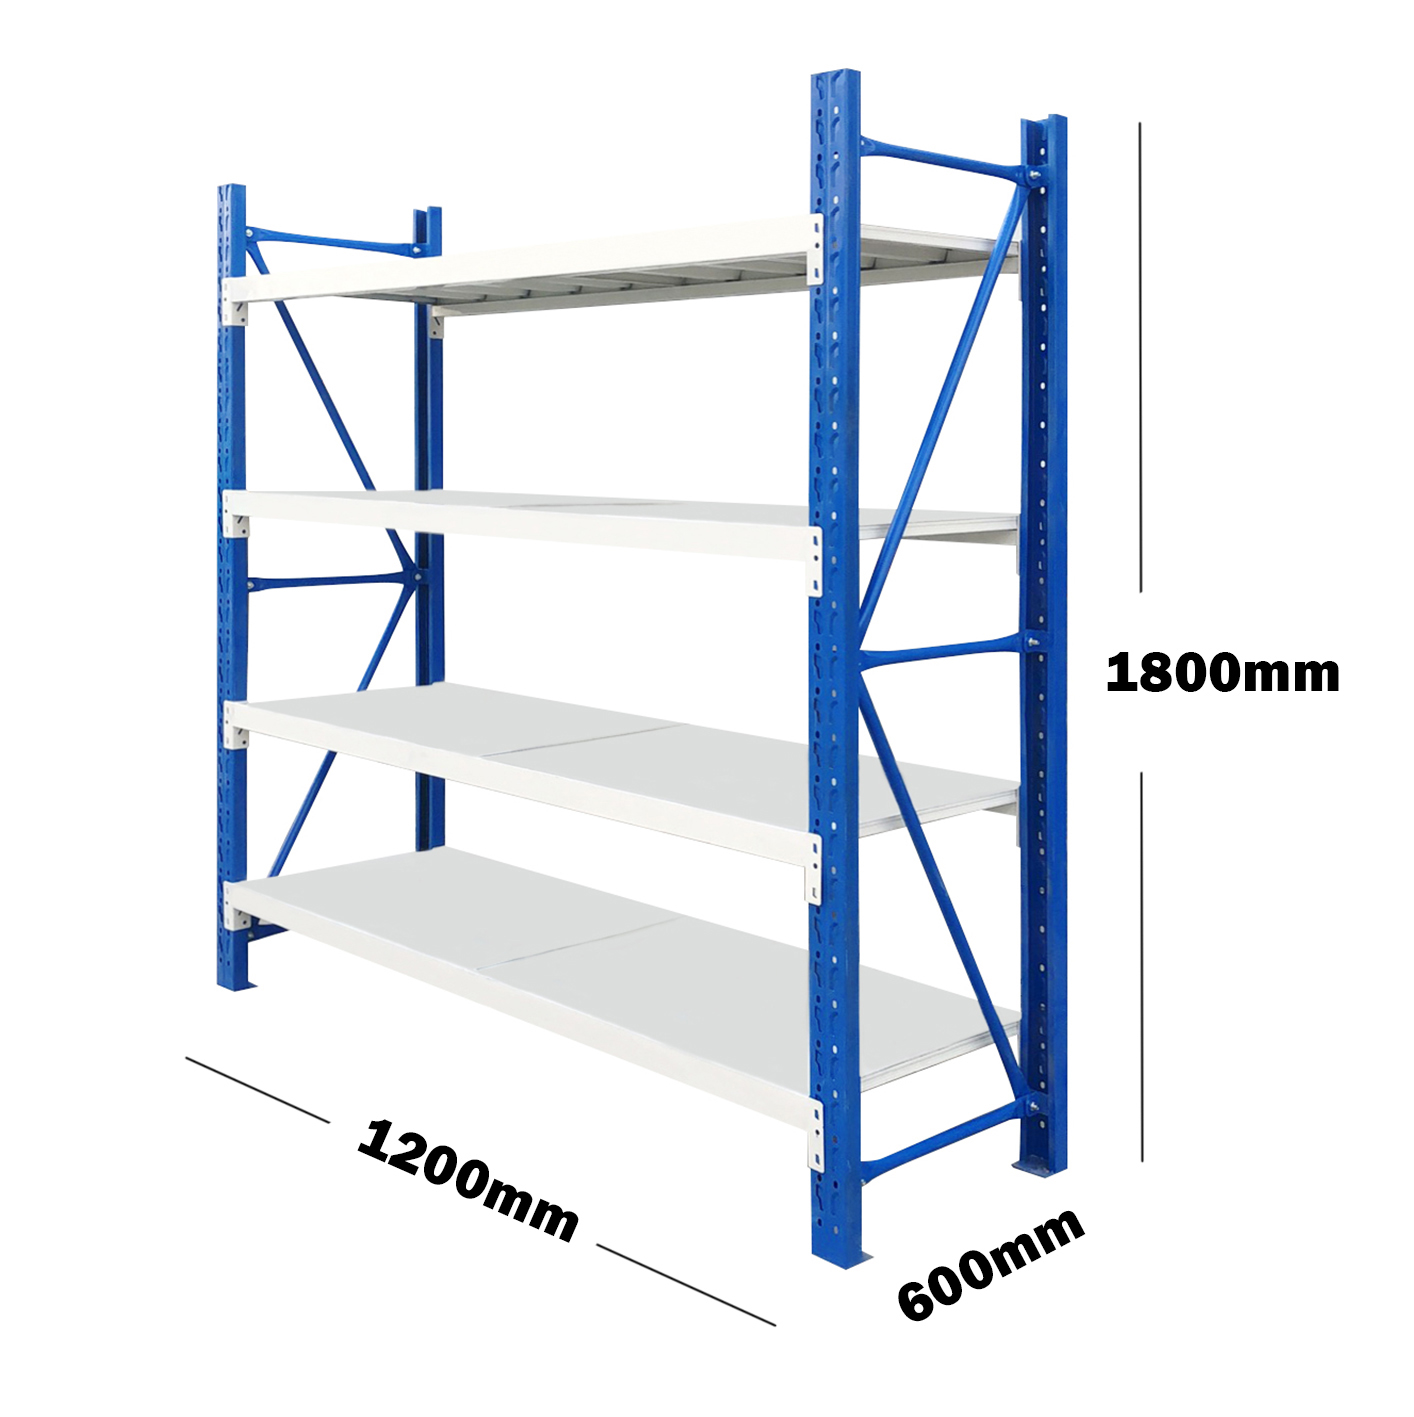 1.2M(L) x 1.8M(H) x 0.6M(D) Shelves Racking Metal Steel Blue & Grey 1218BG